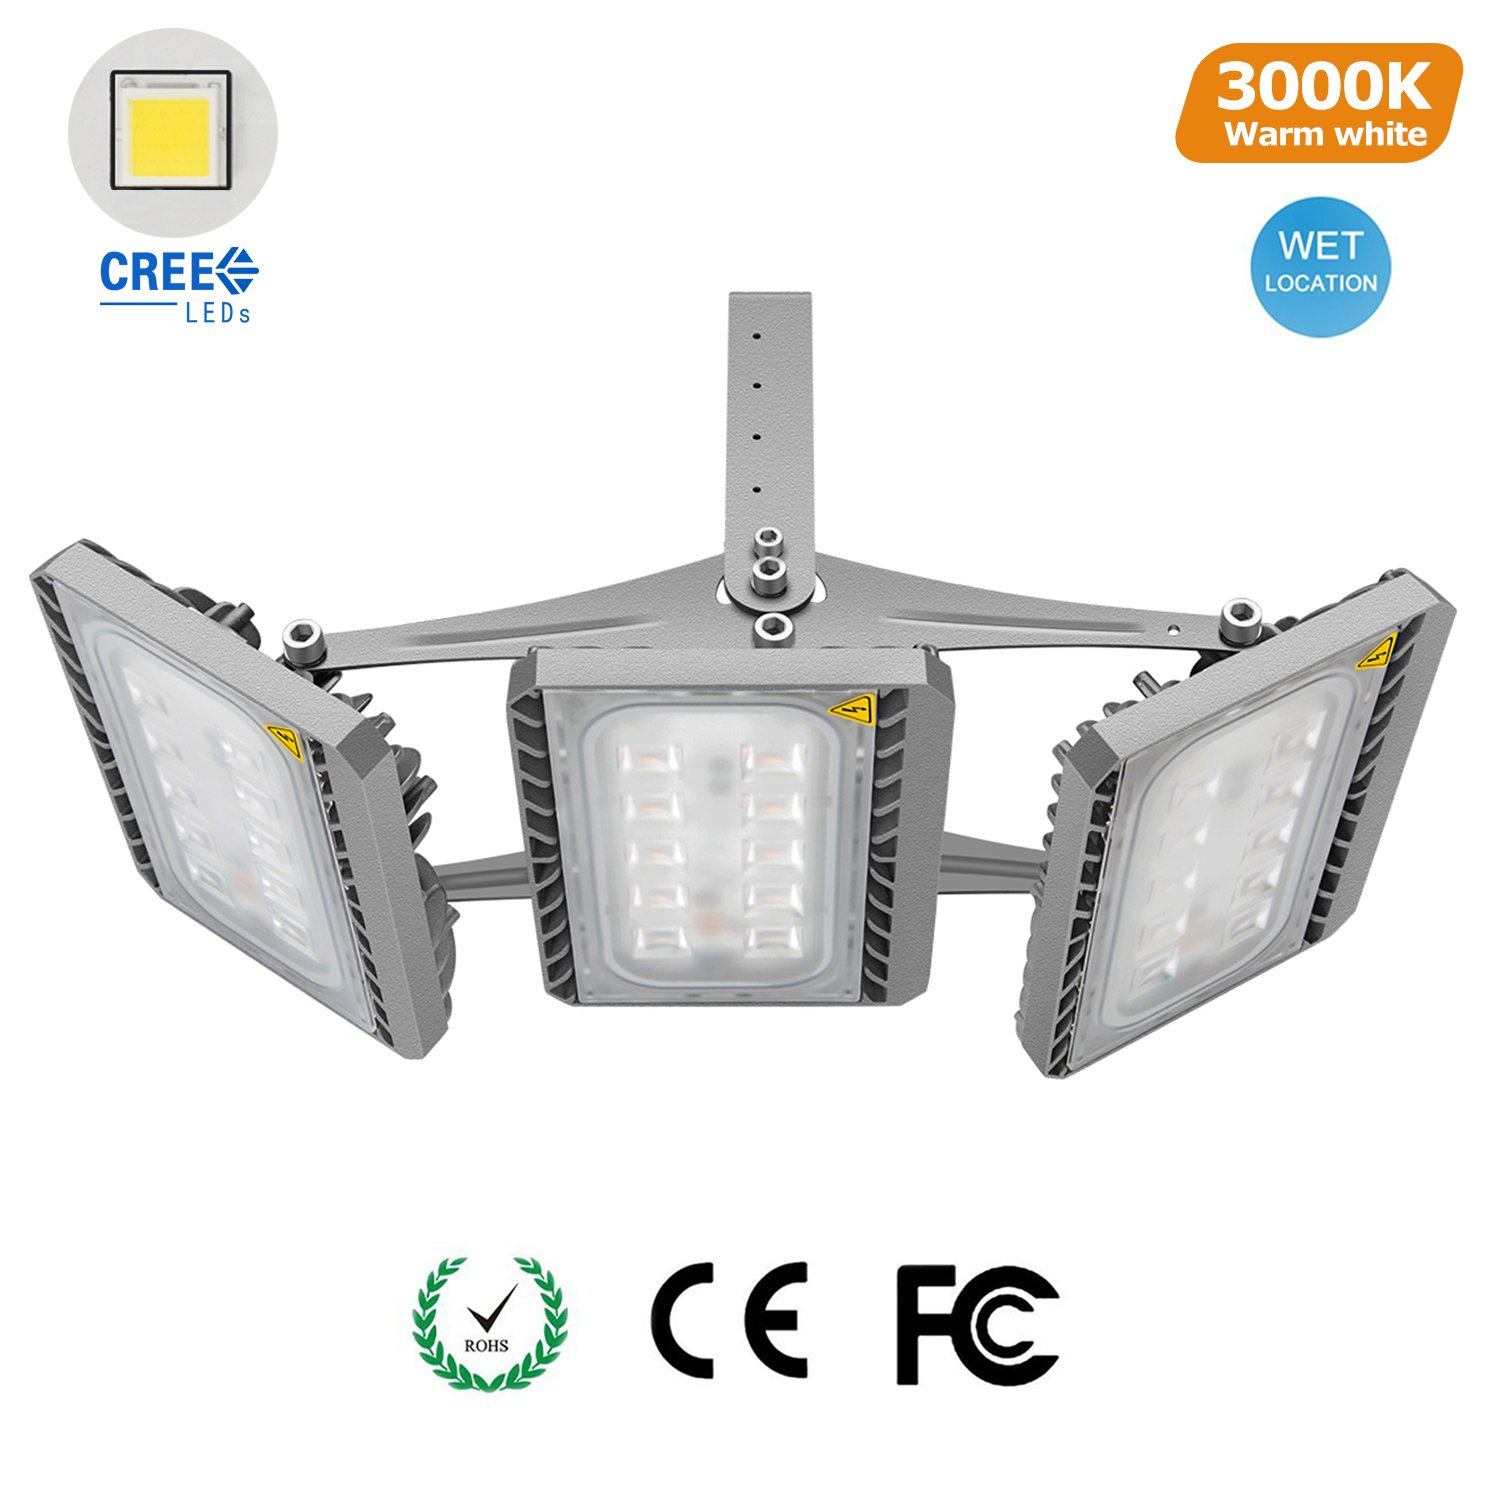 STASUN LED Flood Light, 150W Super Bright Security Lights Outdoor with Wide Lighting Area, CREE LED Source, 13500lm, 3000K, Adjustable 3-Head, Waterproof Spotlight by STASUN